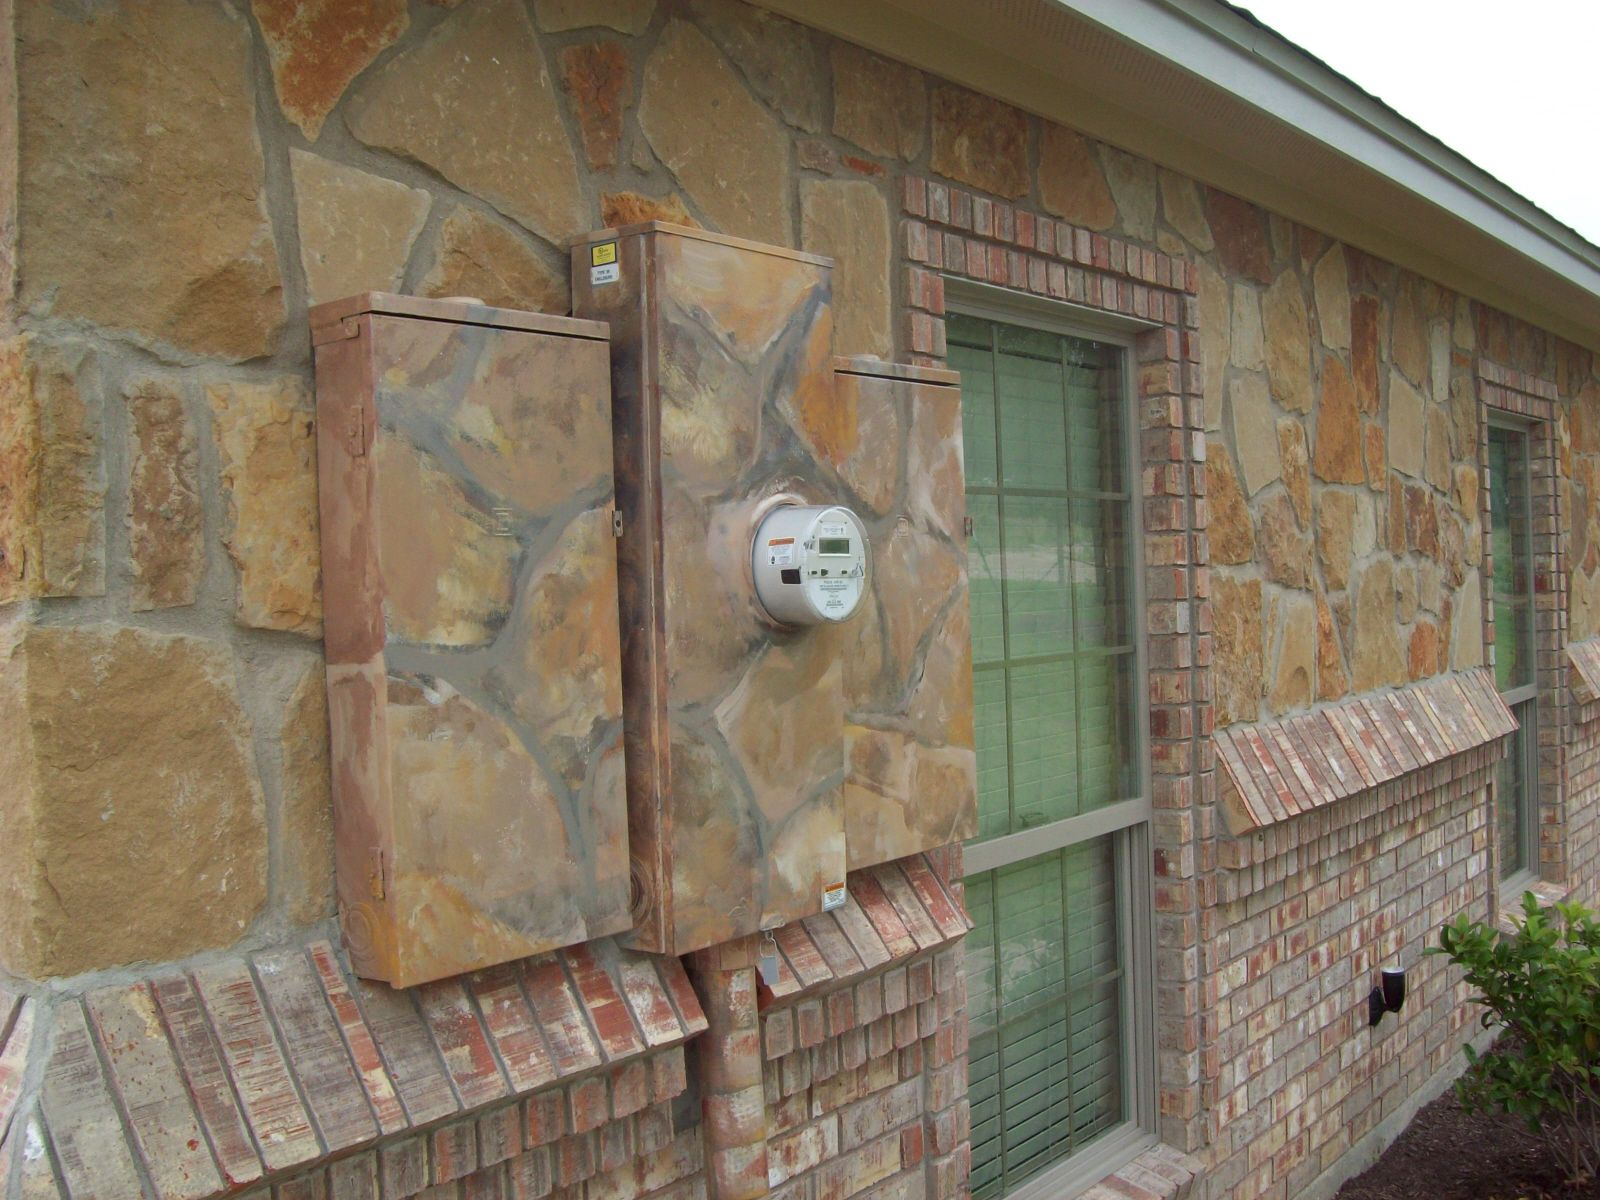 Pin on Landscaping & Outdoor Decor